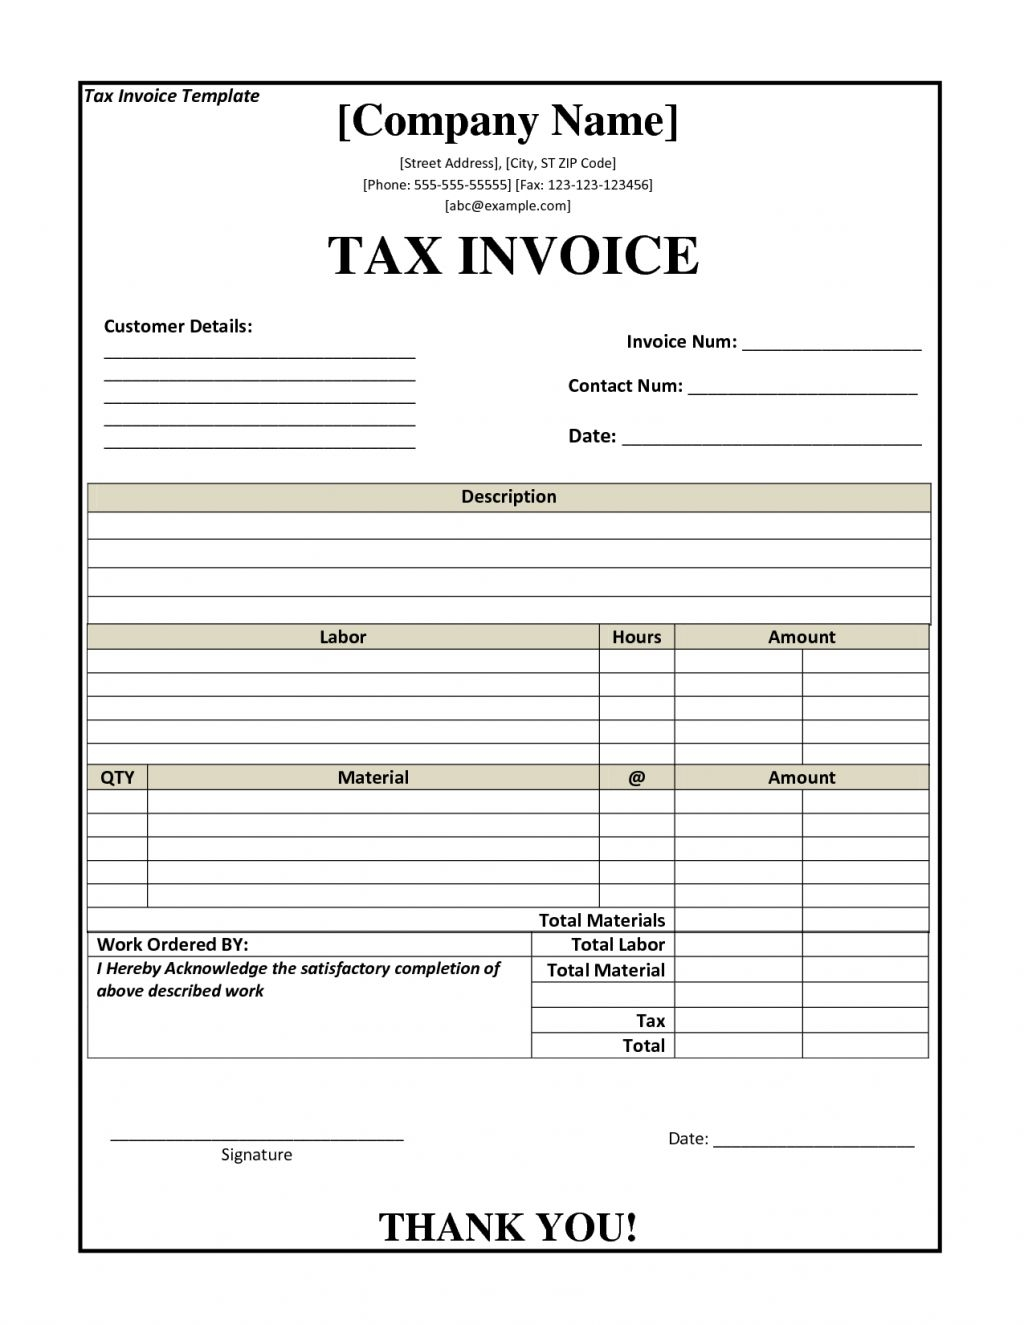 Tax Invoice Samples